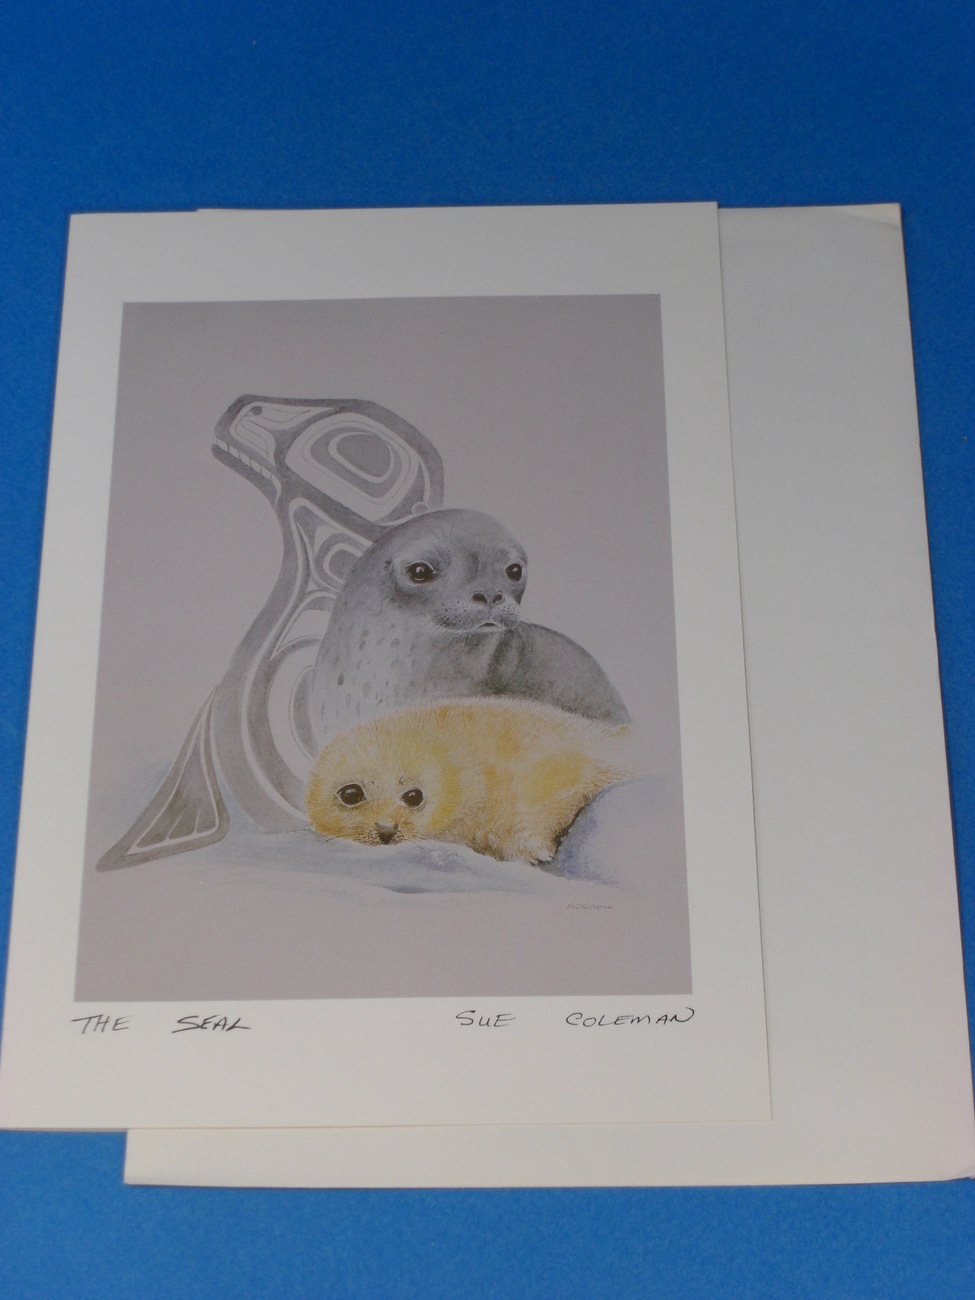 THE SEAL Art Card by Susan Coleman